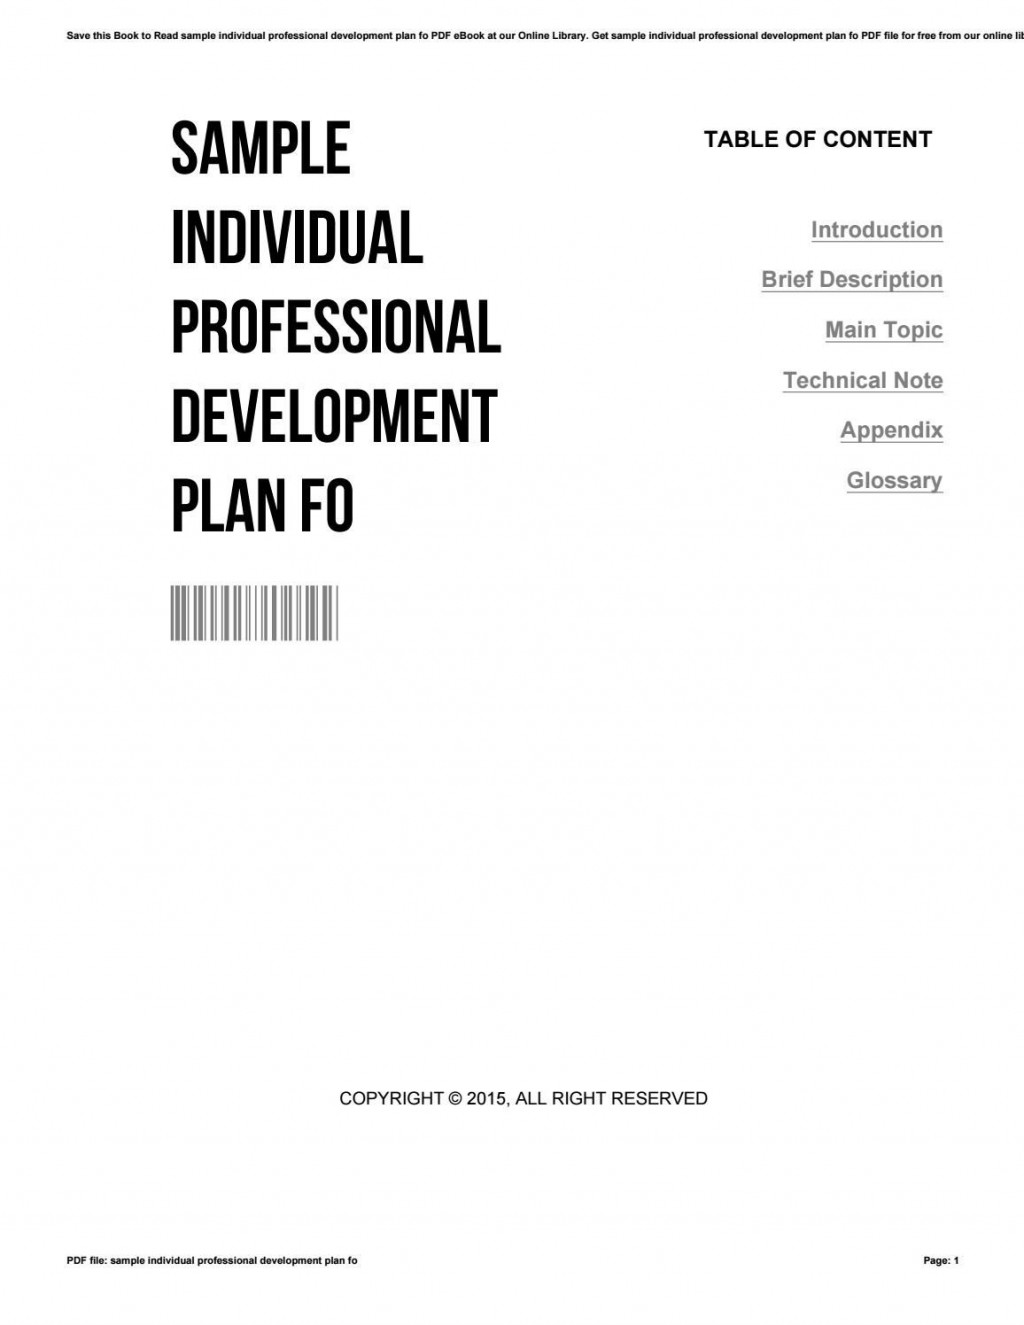 009 Amazing Professional Development Plan Template Pdf Picture  Sample ExampleLarge